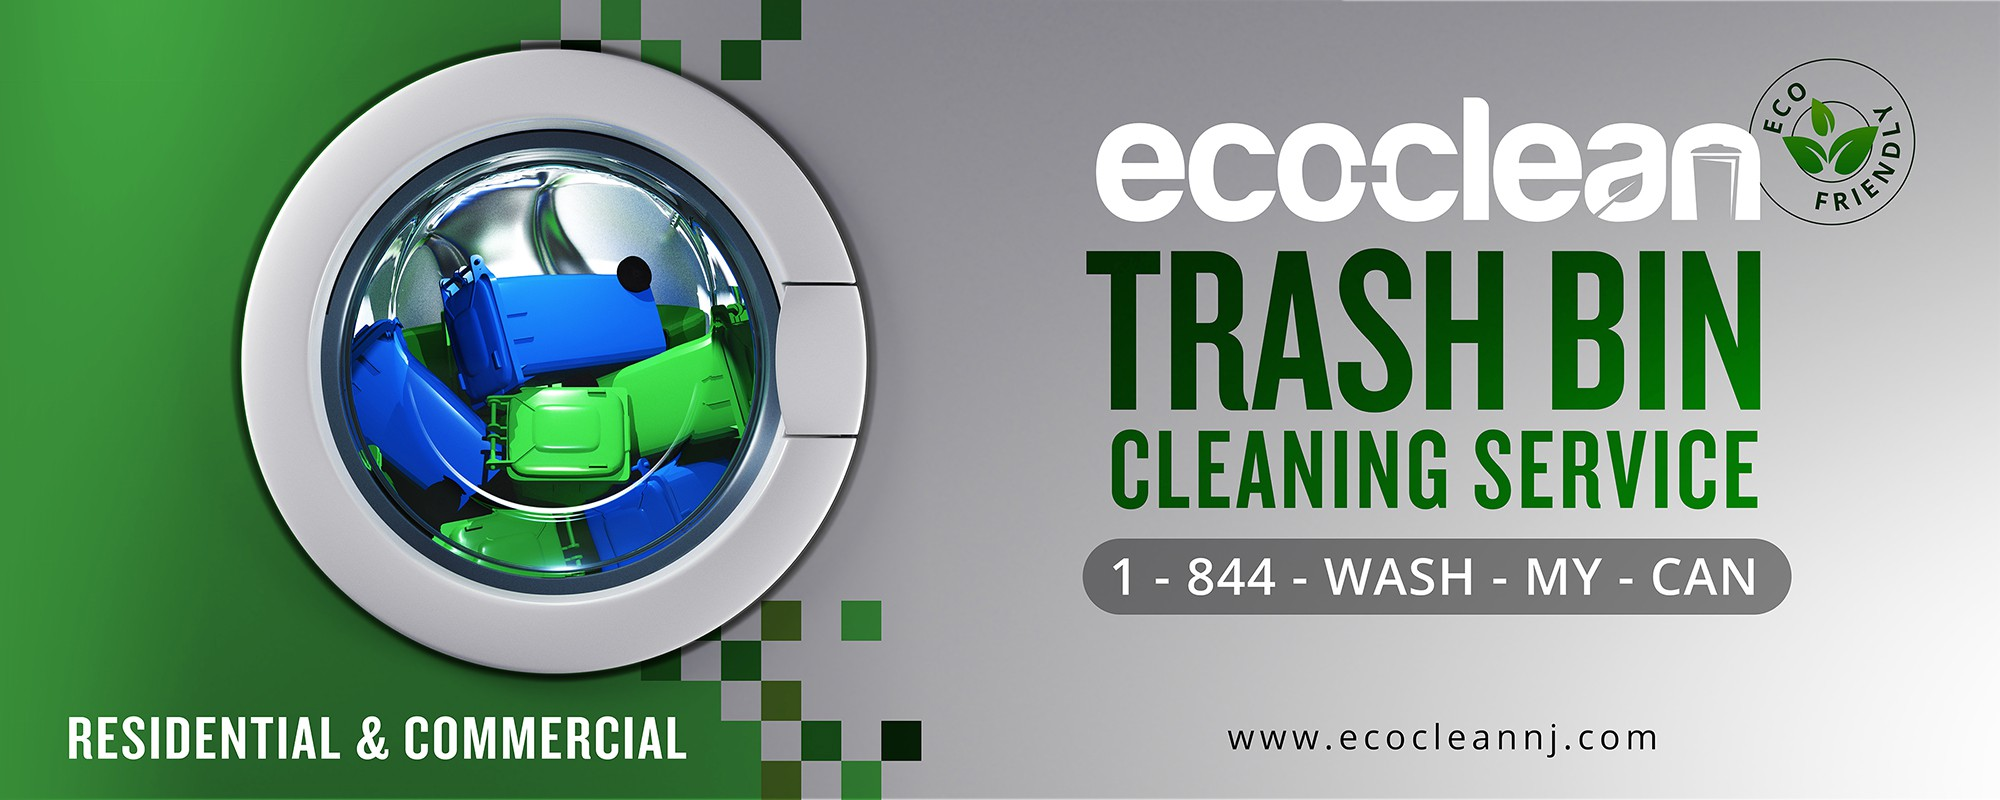 Create a clean, eye-catching truck wrap design for Eco-clean